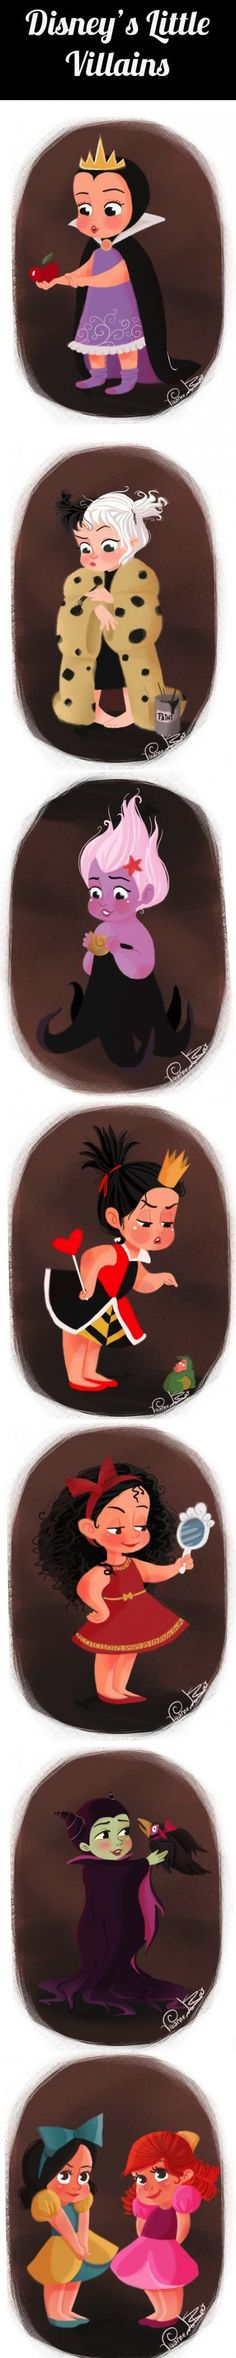 Seven Disney Villains as Cute Little Kids…You Have to See This